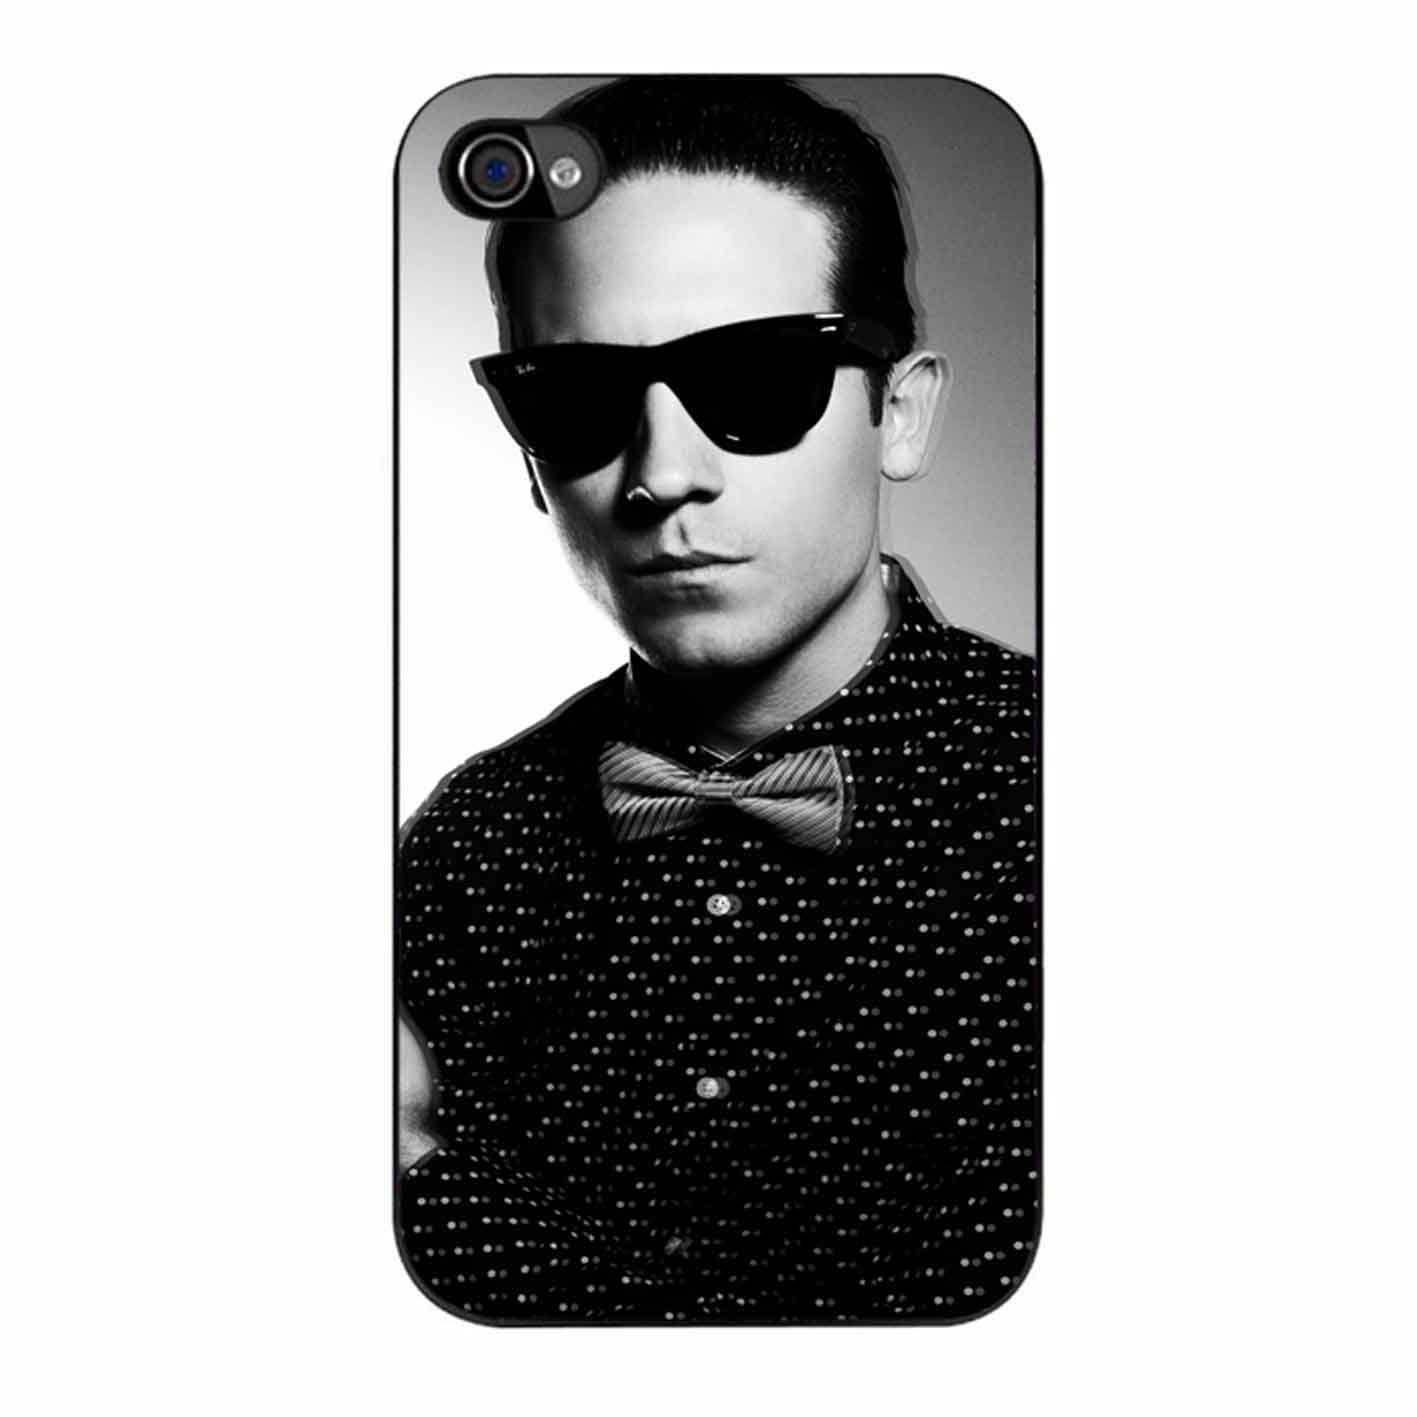 G-Eazy 2 iPhone 4/4s Case